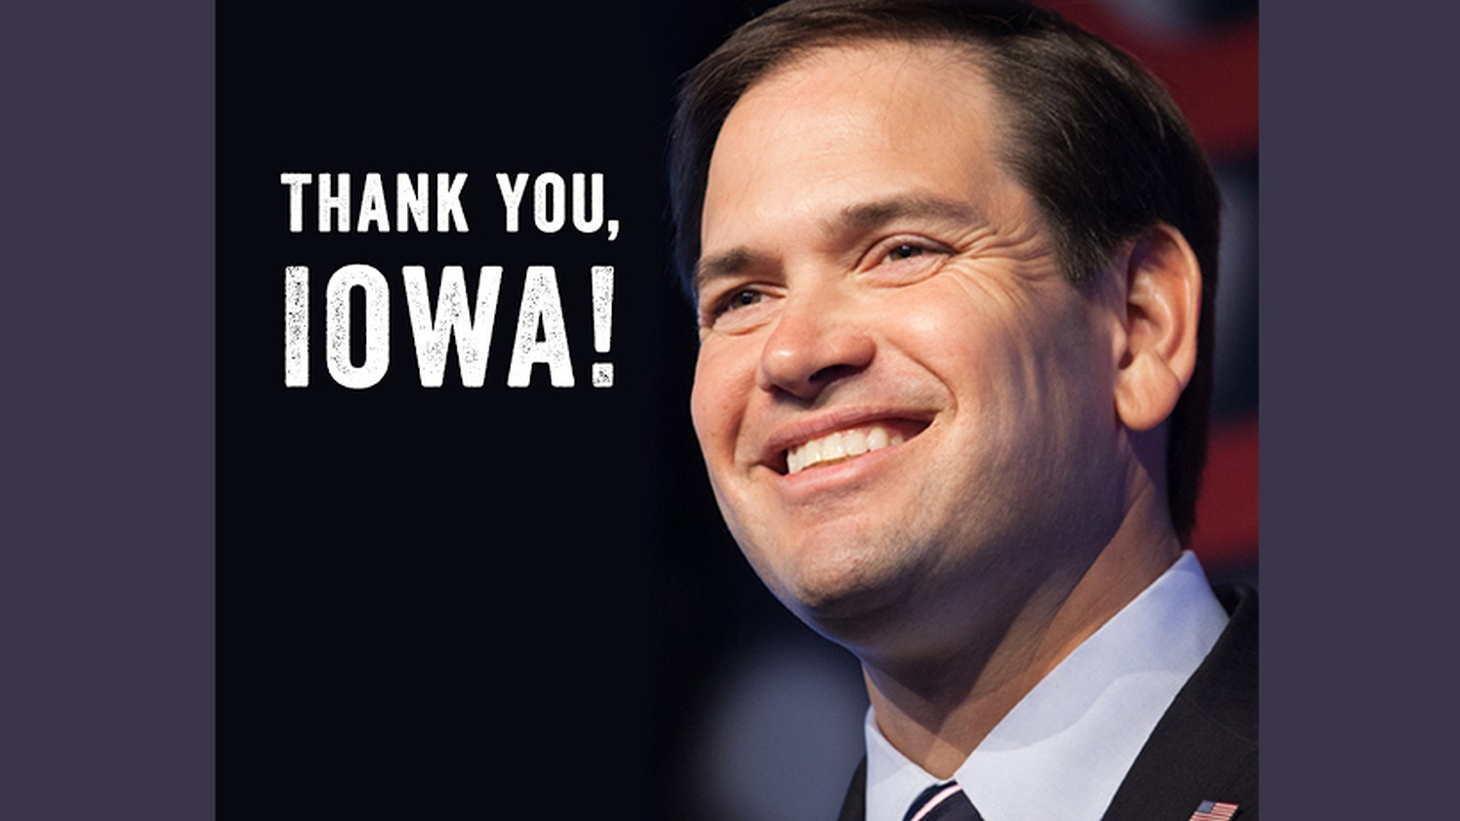 Can third place really mean first place? Republican presidential candidate Marco Rubio certainly thought so. Rubio came in third place while Democratic candidates Hillary Clinton and Bernie Sanders were in a virtual tie. We discuss the winners and losers (or not) of the Iowa caucuses.